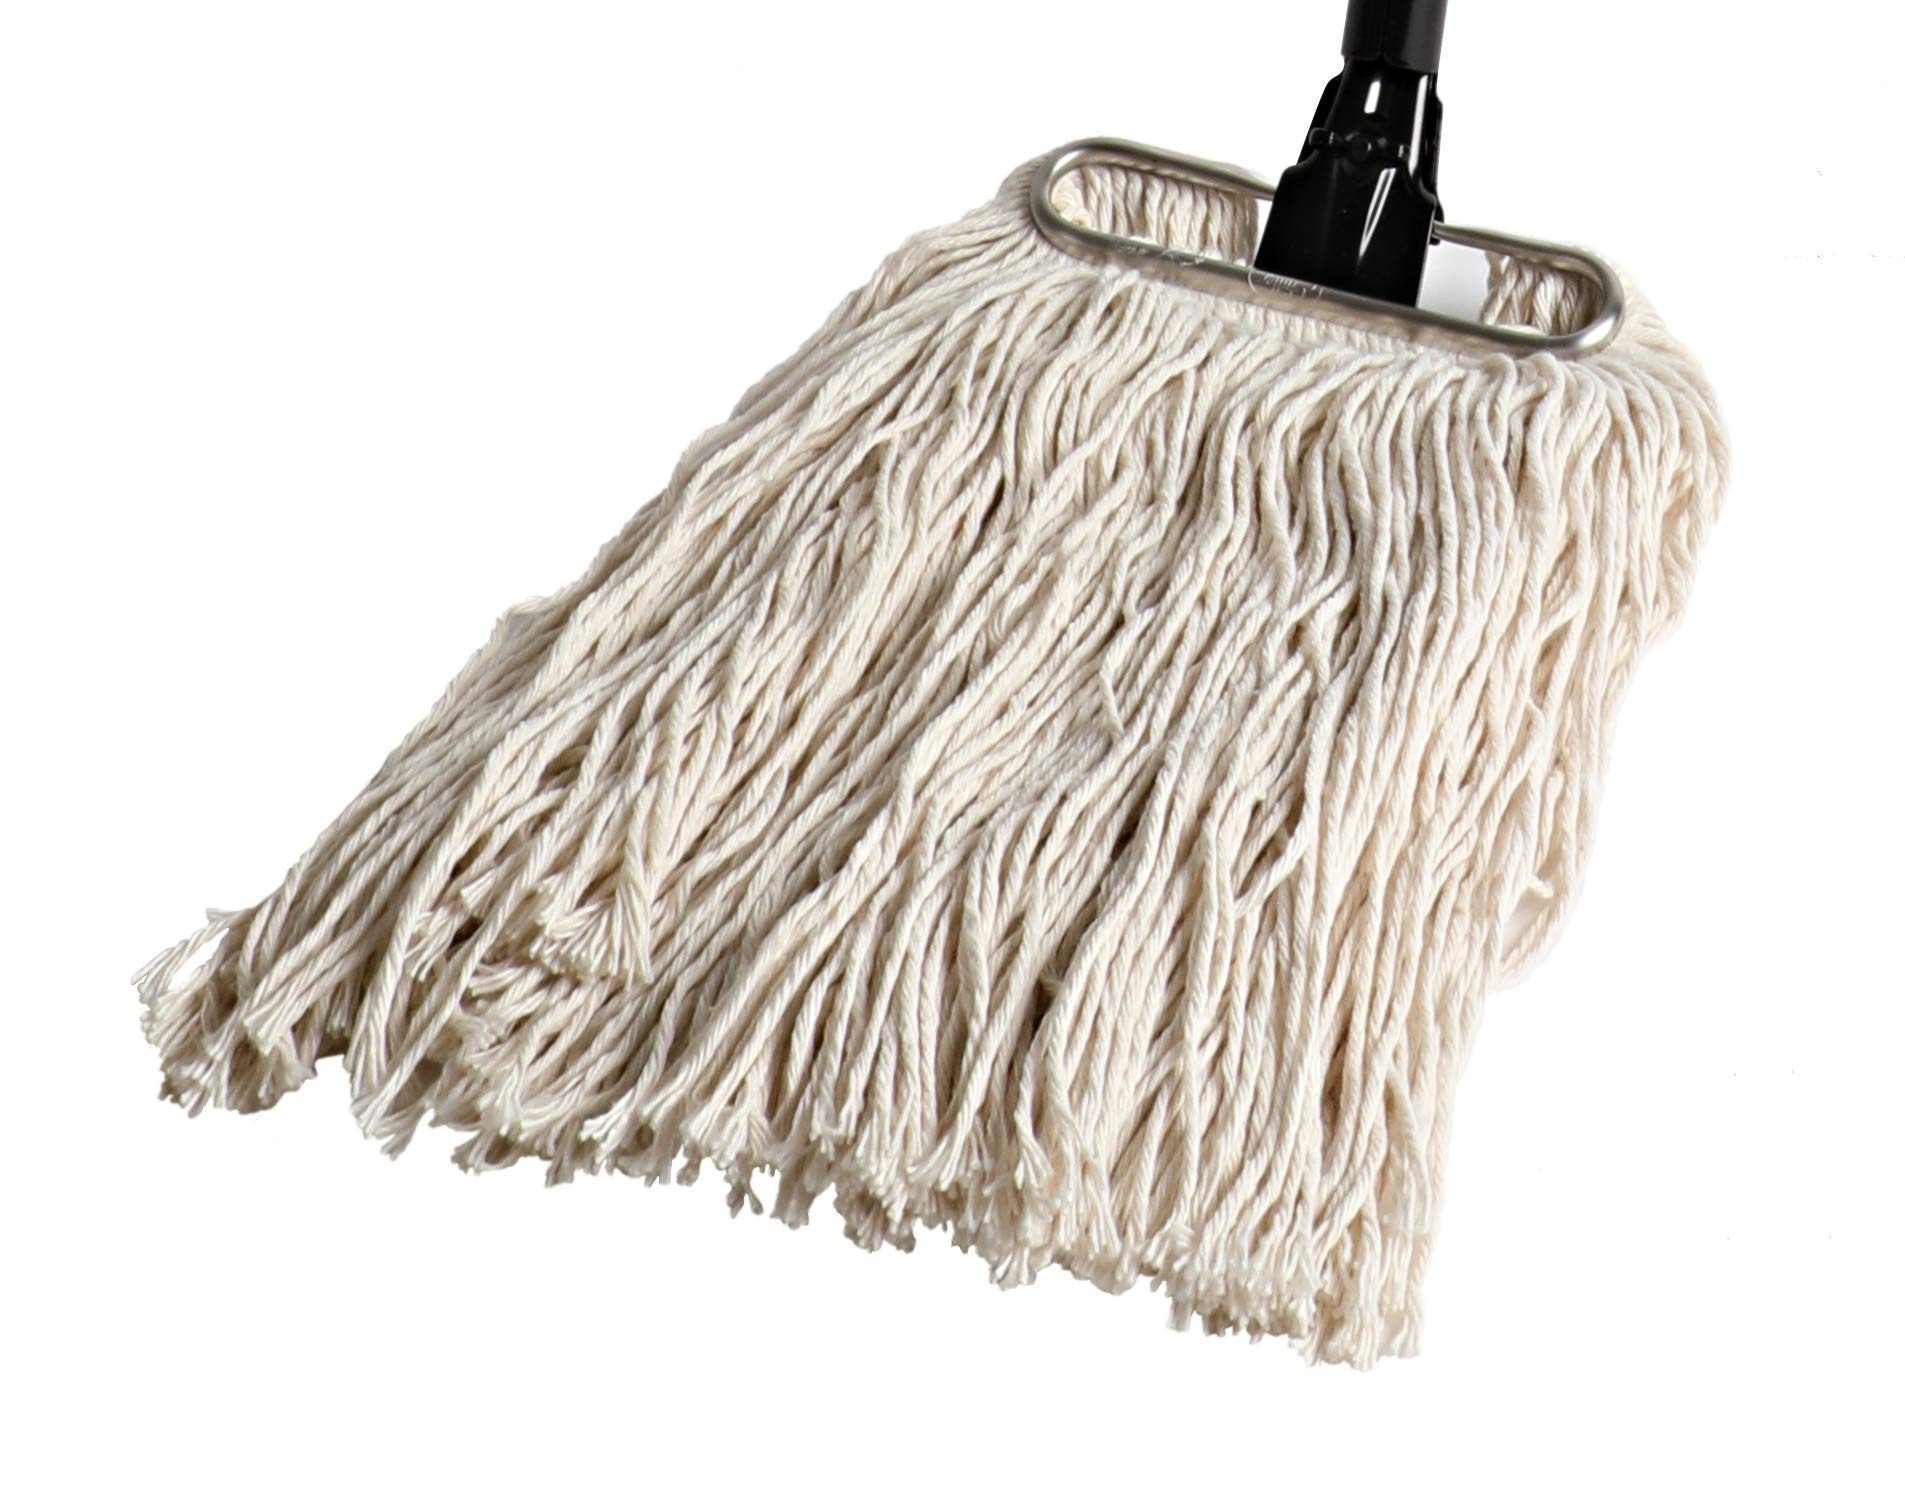 Fuller Brush Wet Mop Head - Absorbent & Professional Quality Cotton Yarn Floor Cleaner for Cleaning House, Commercial & Industrial Spaces by Fuller Brush (Image #2)